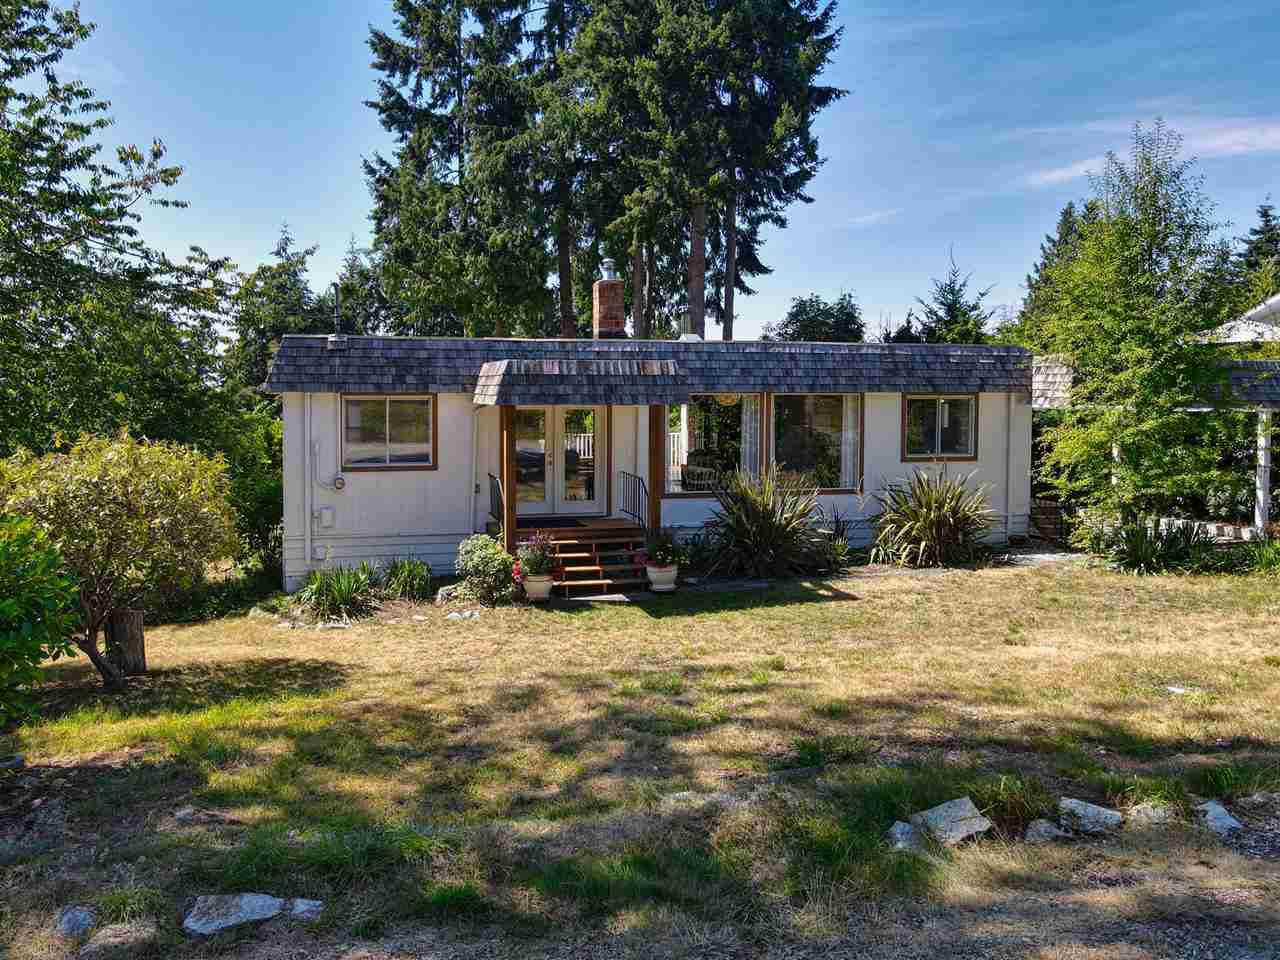 Lovely, quiet location yet close to all amenities, schools, beaches.